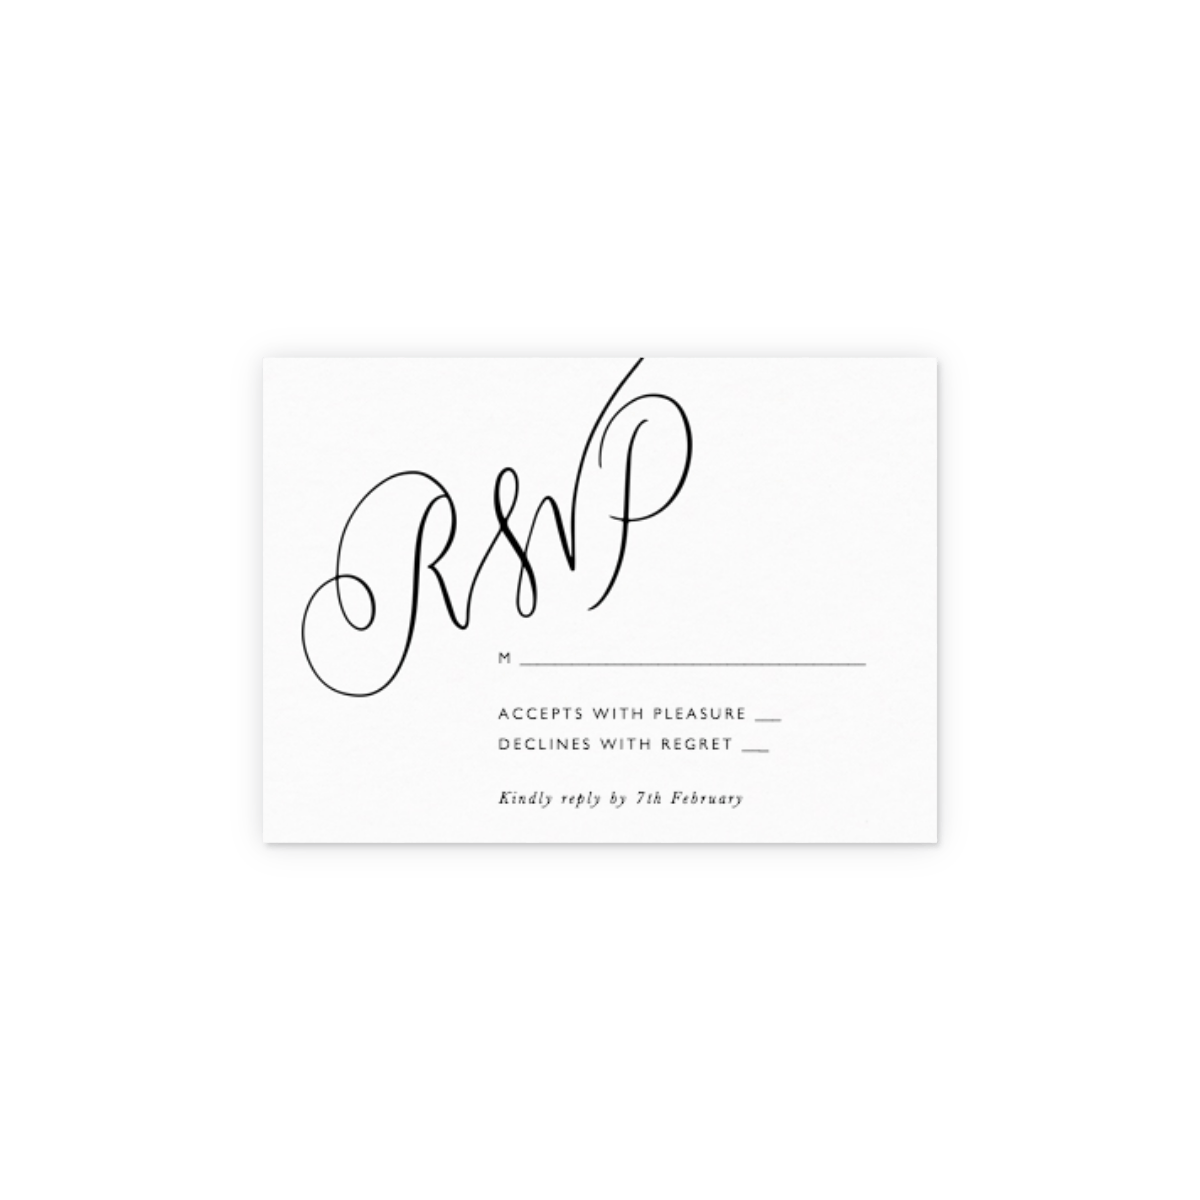 Https%3a%2f%2fwww.papier.com%2fproduct image%2f8901%2f13%2fthe marriage of calligraphy 2227 rsvp 1532444130.png?ixlib=rb 1.1